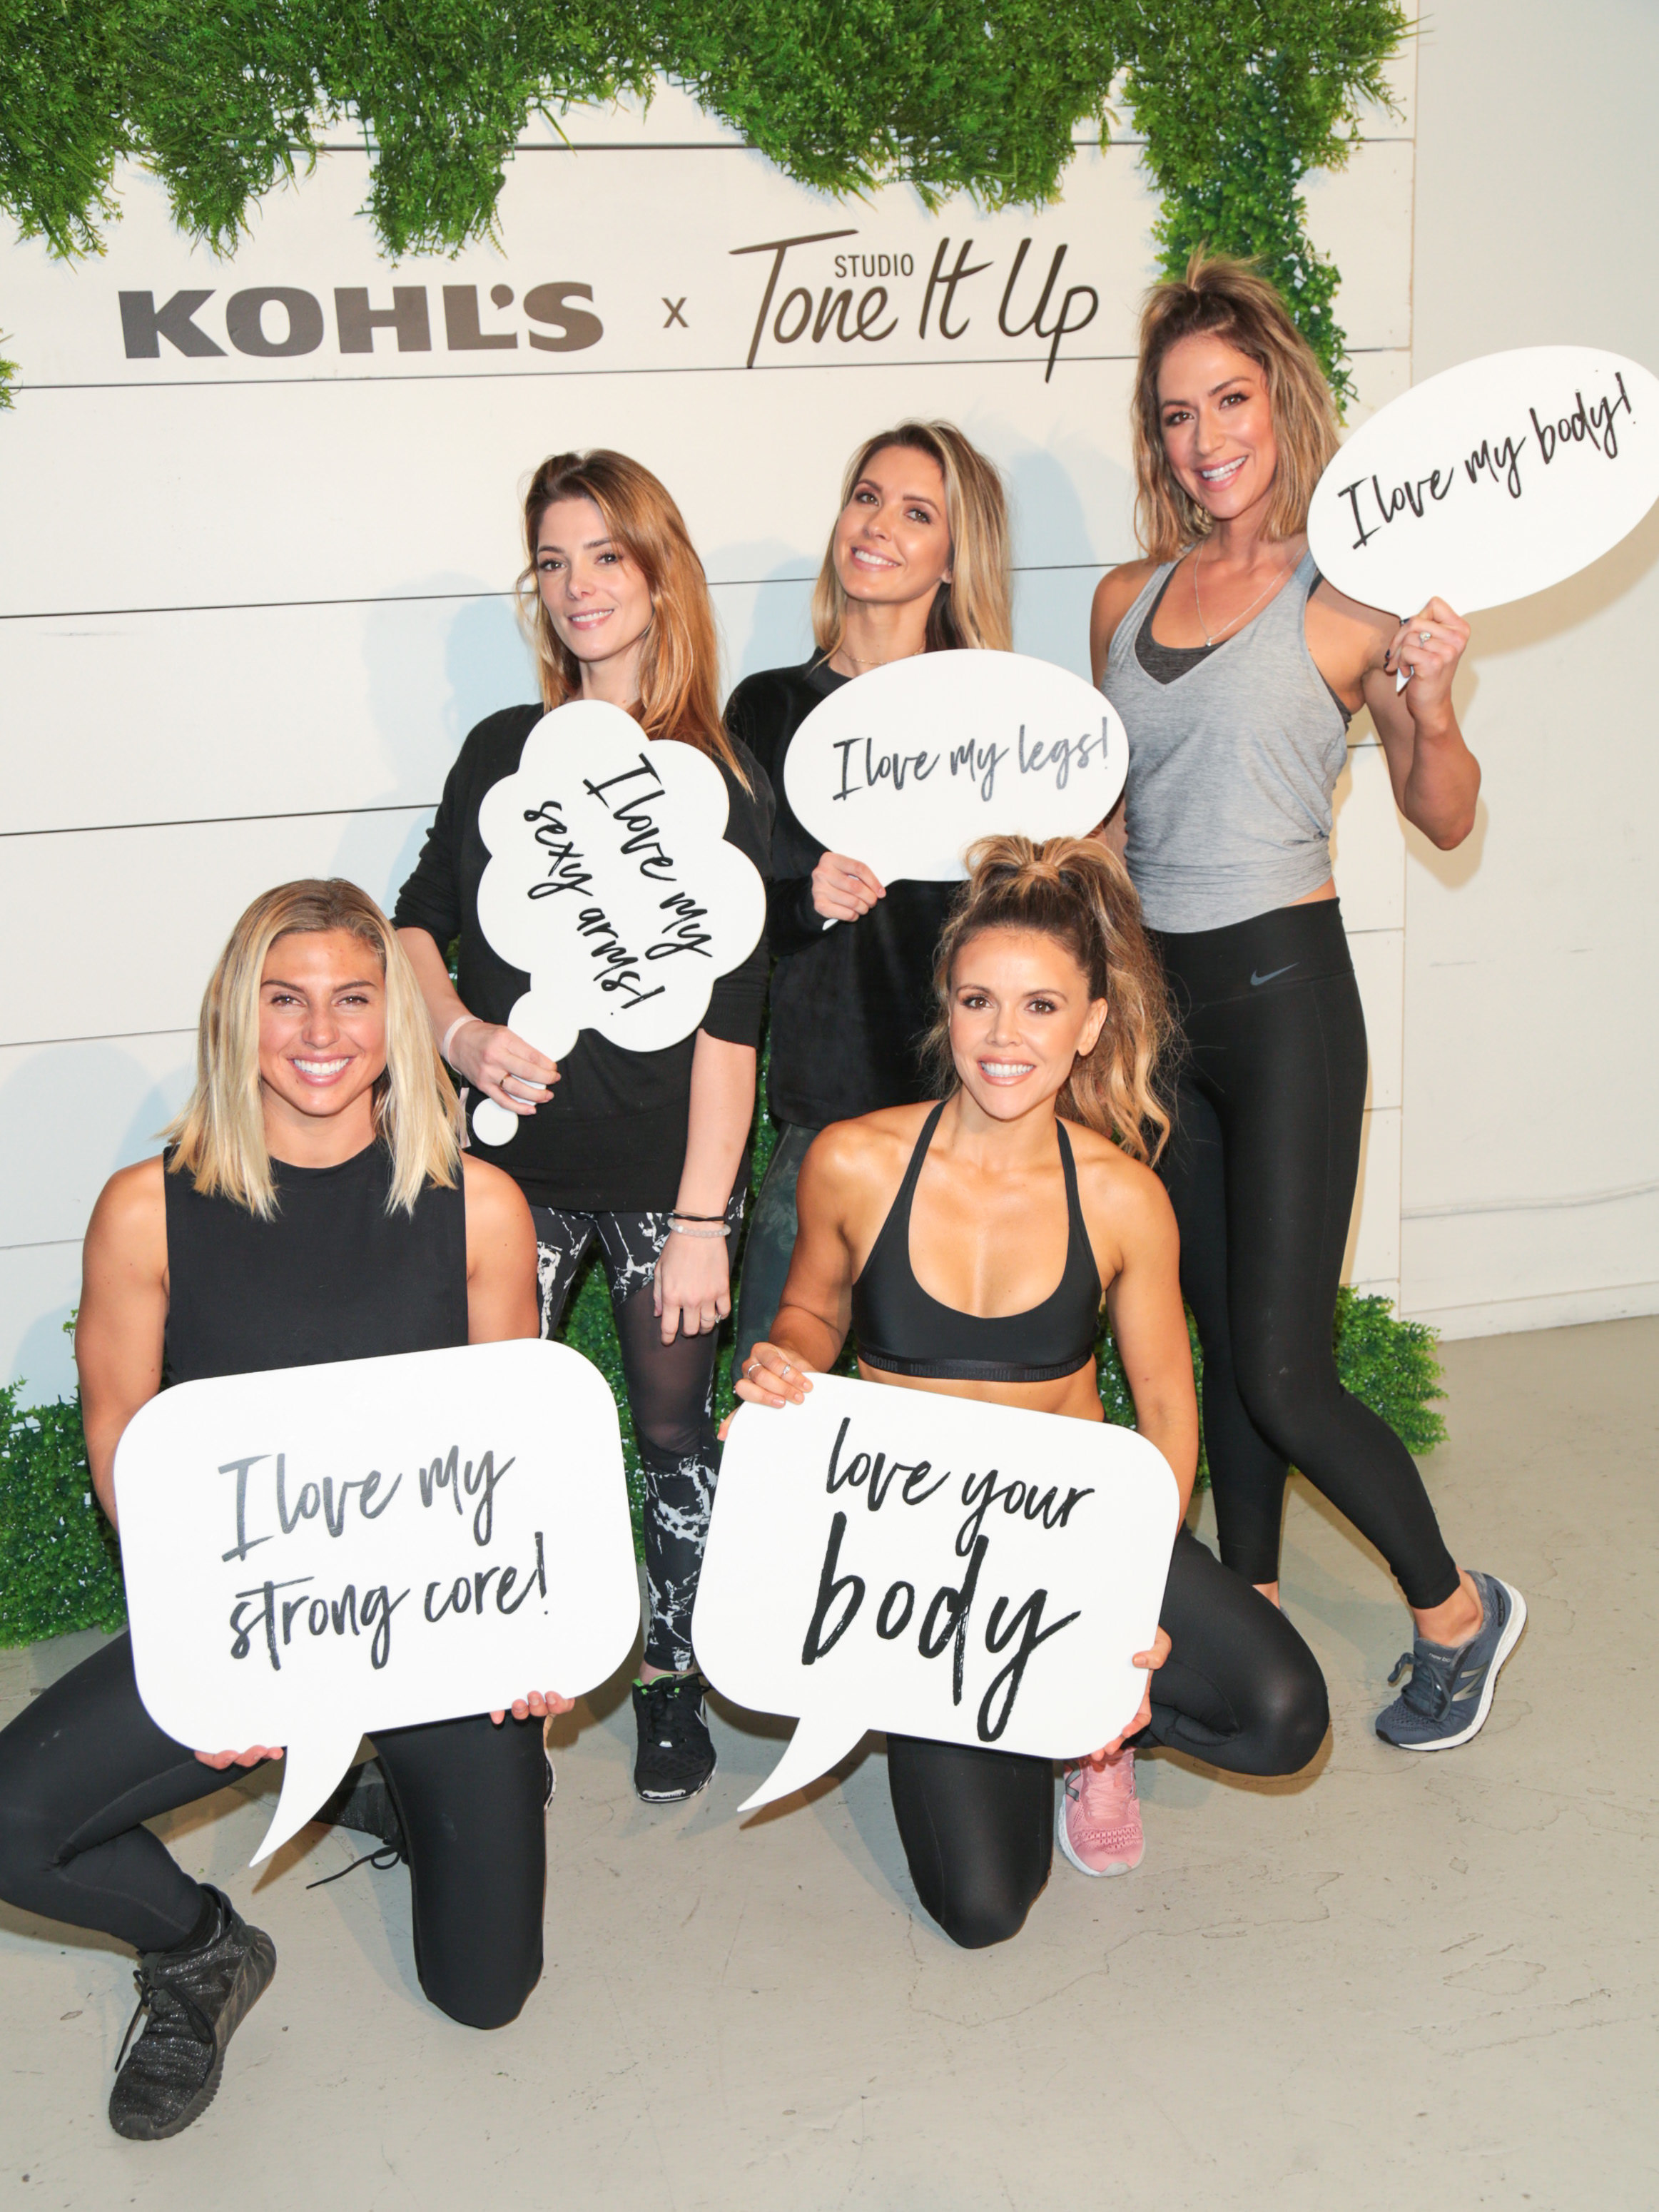 Sage Erickson, Ashley Greene, Katrina Hodgson, Audrina Patridge and  Karena Dawn appear at the Kohl's x Studio Tone It Up event in Los Angeles on Jan. 14, 2018.